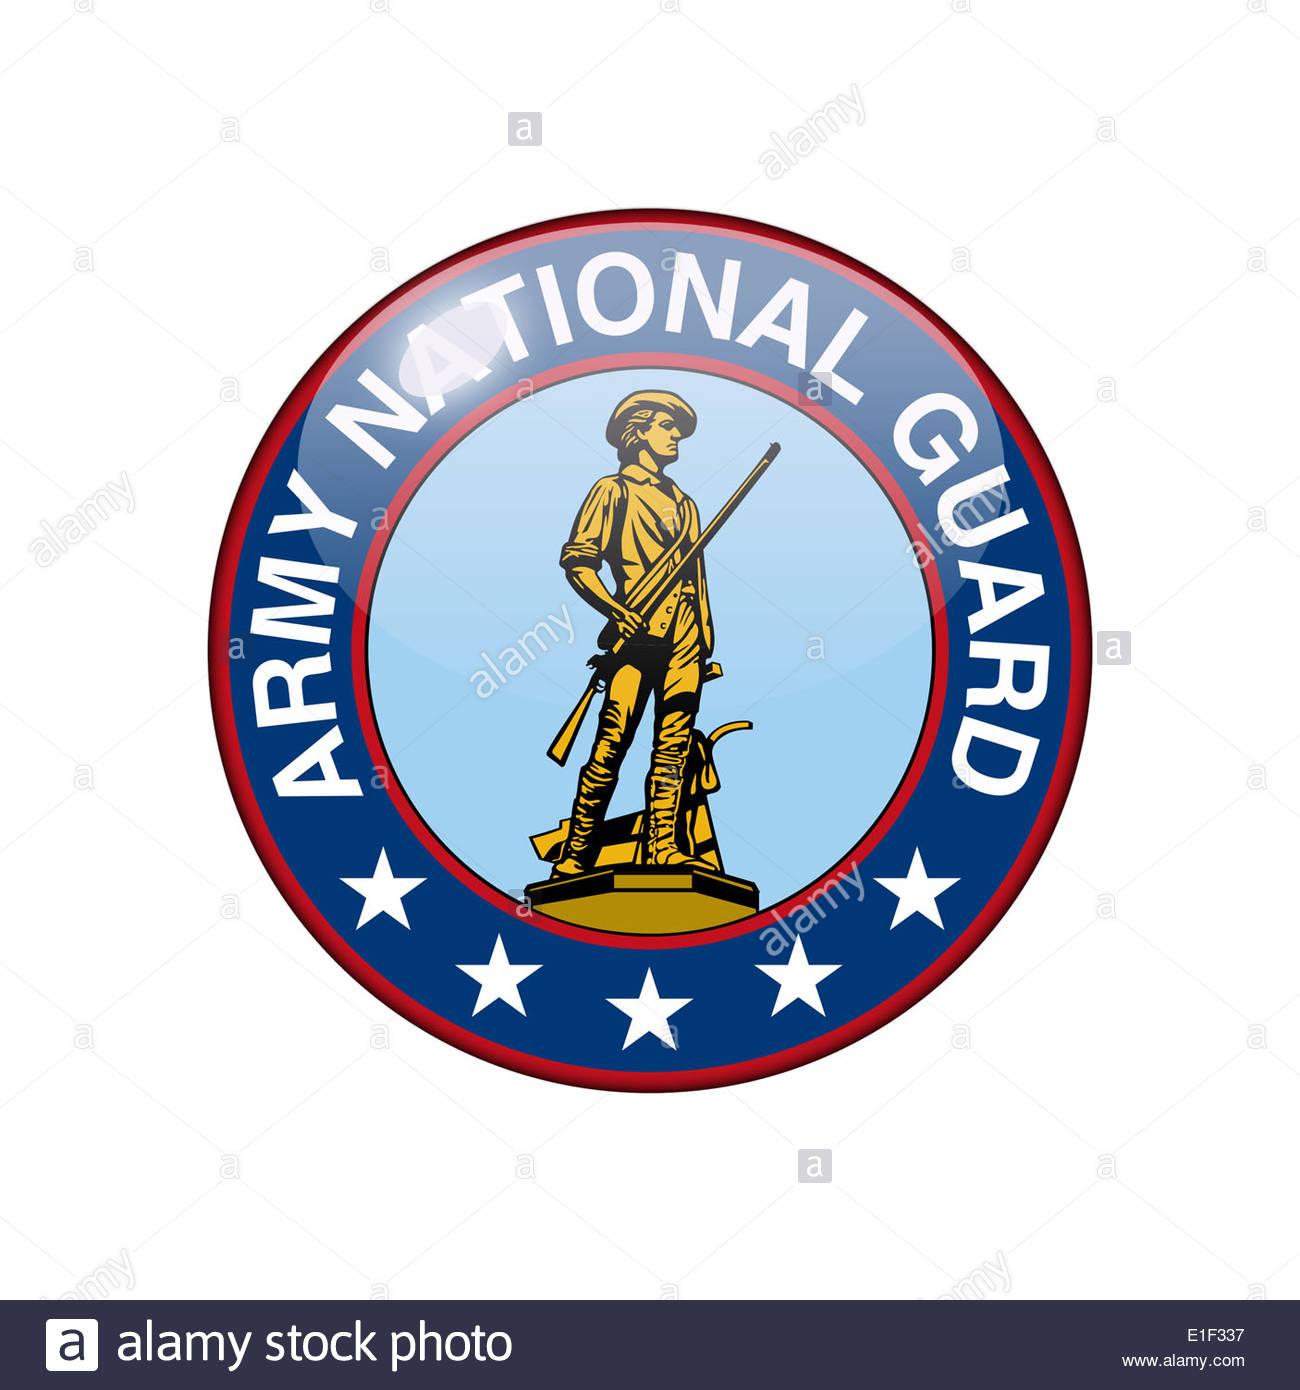 US Army National Guard icon logo isolated app button - Stock Image